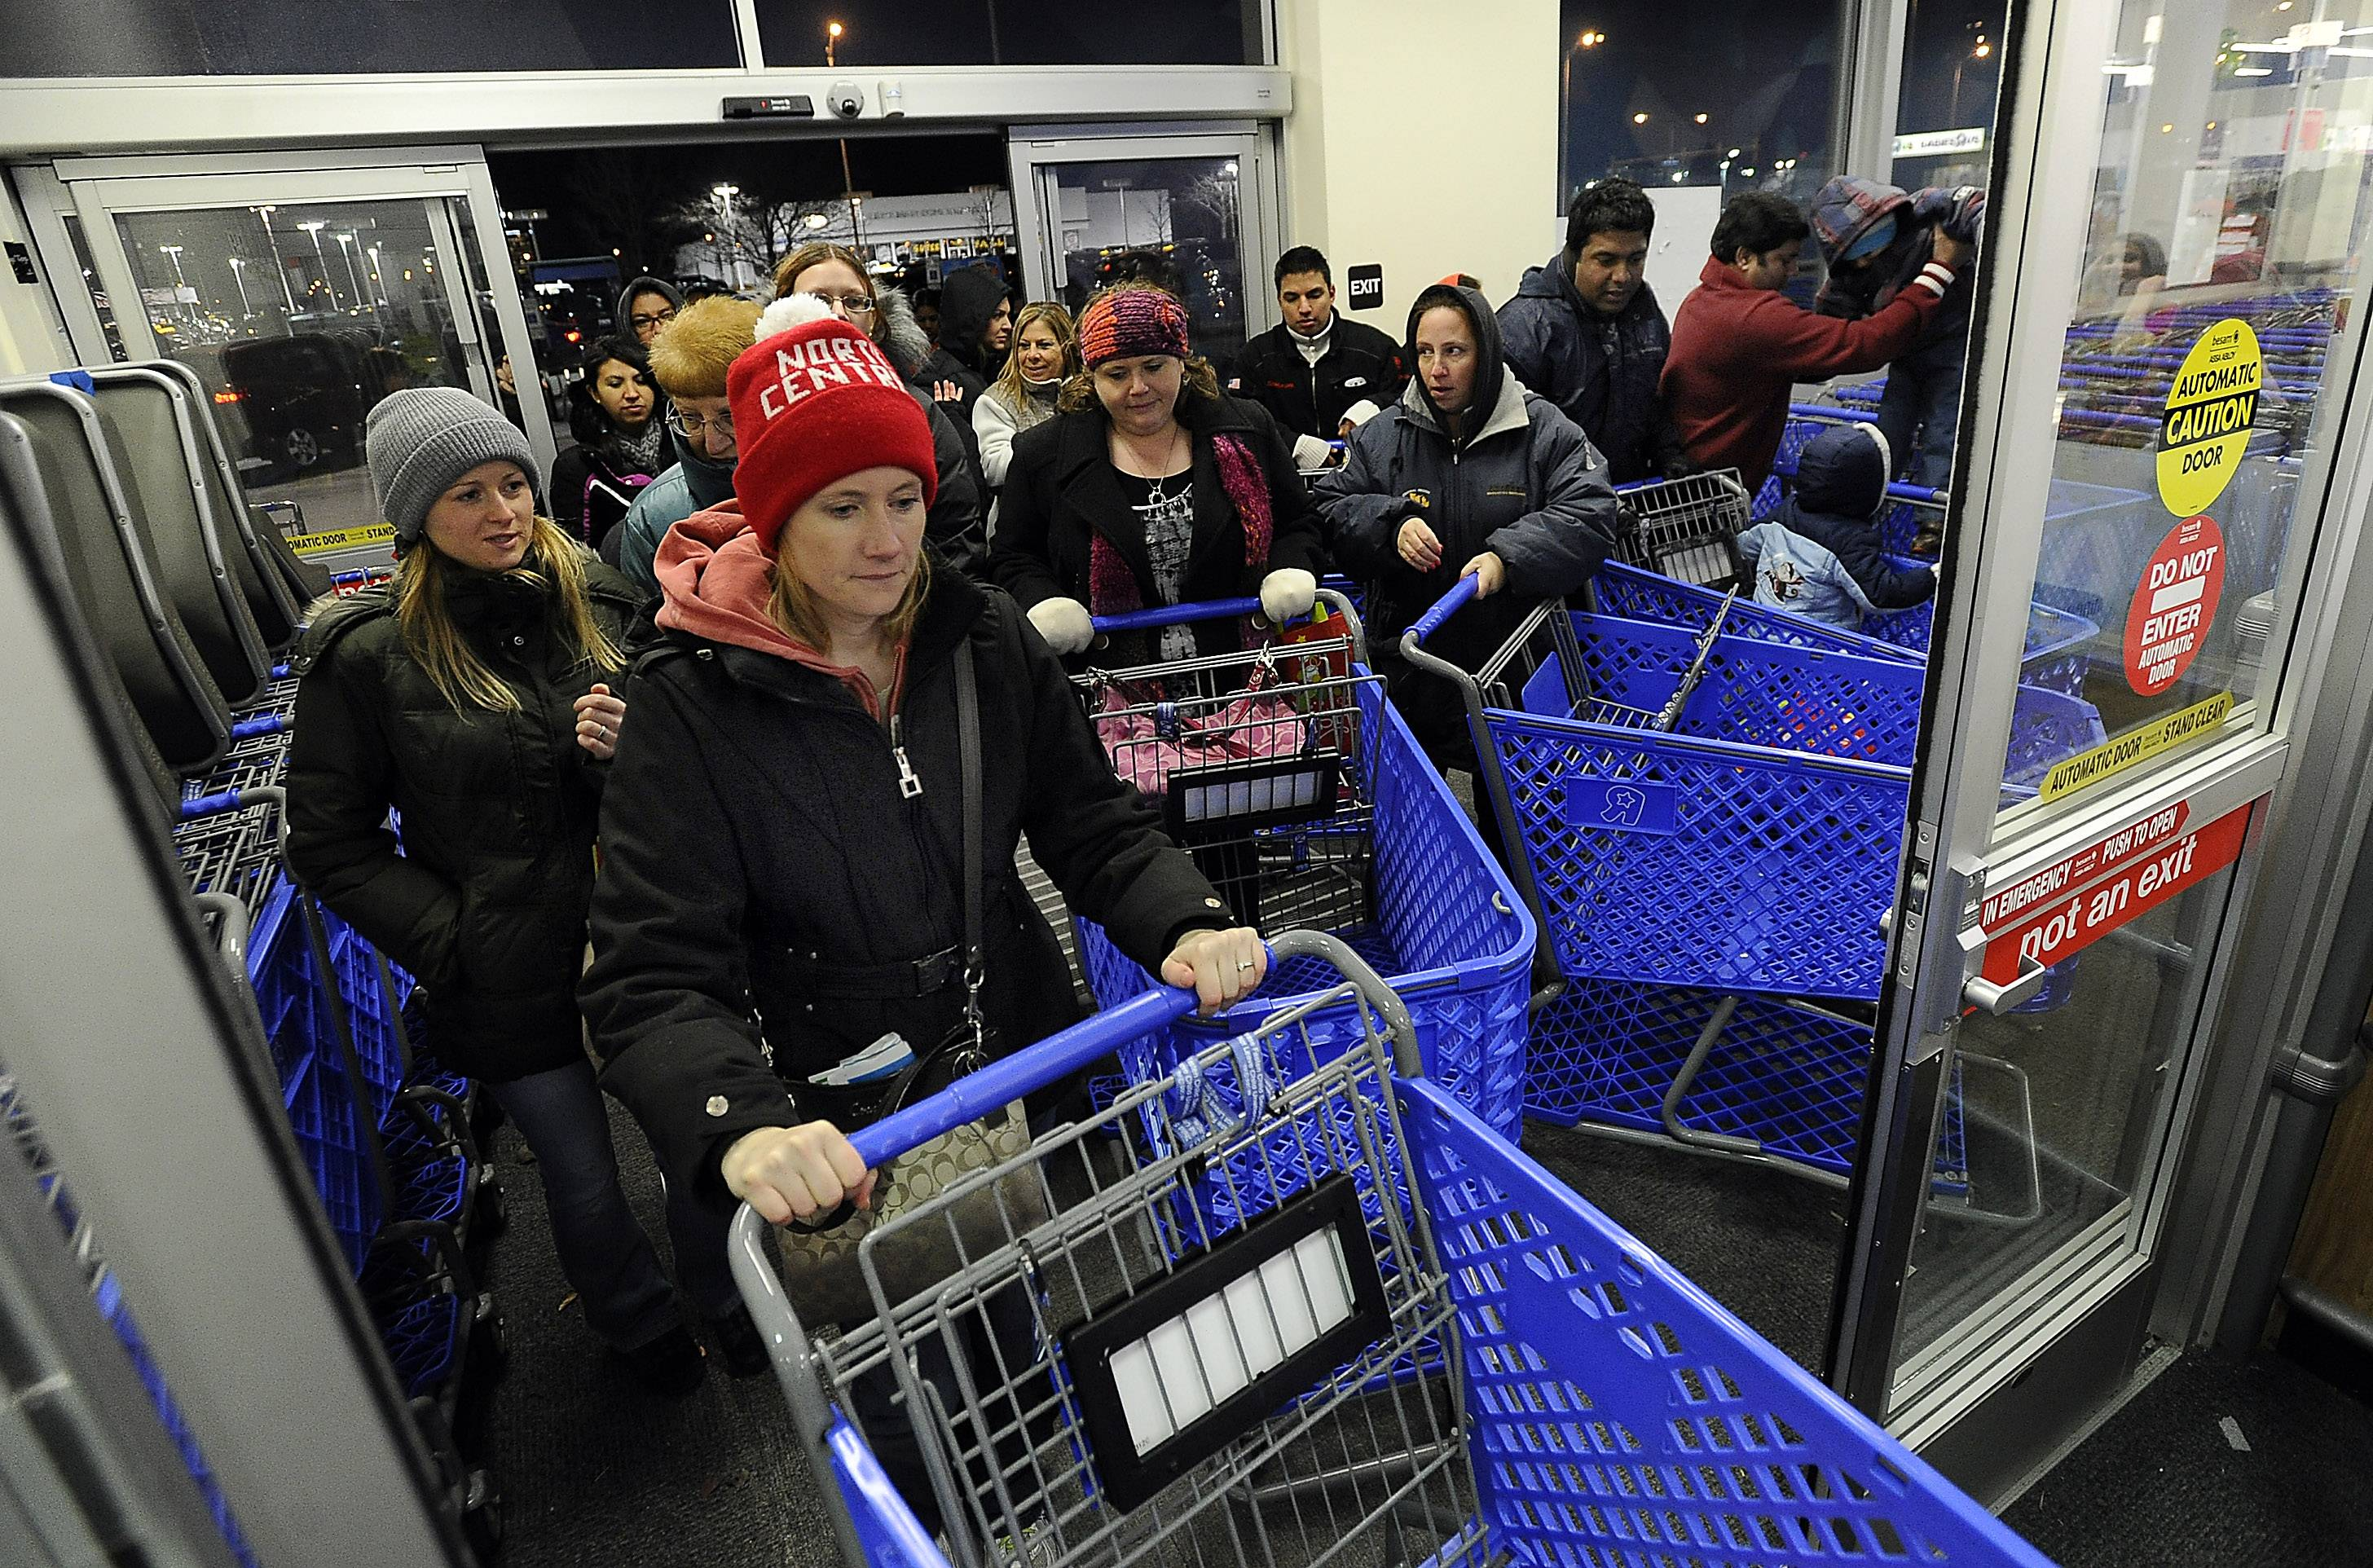 Shoppers storm the Toys R Us in Schaumburg last year as Black Friday officially started early on Thursday. You can expect expanded excitement for the holiday sales this year, too.